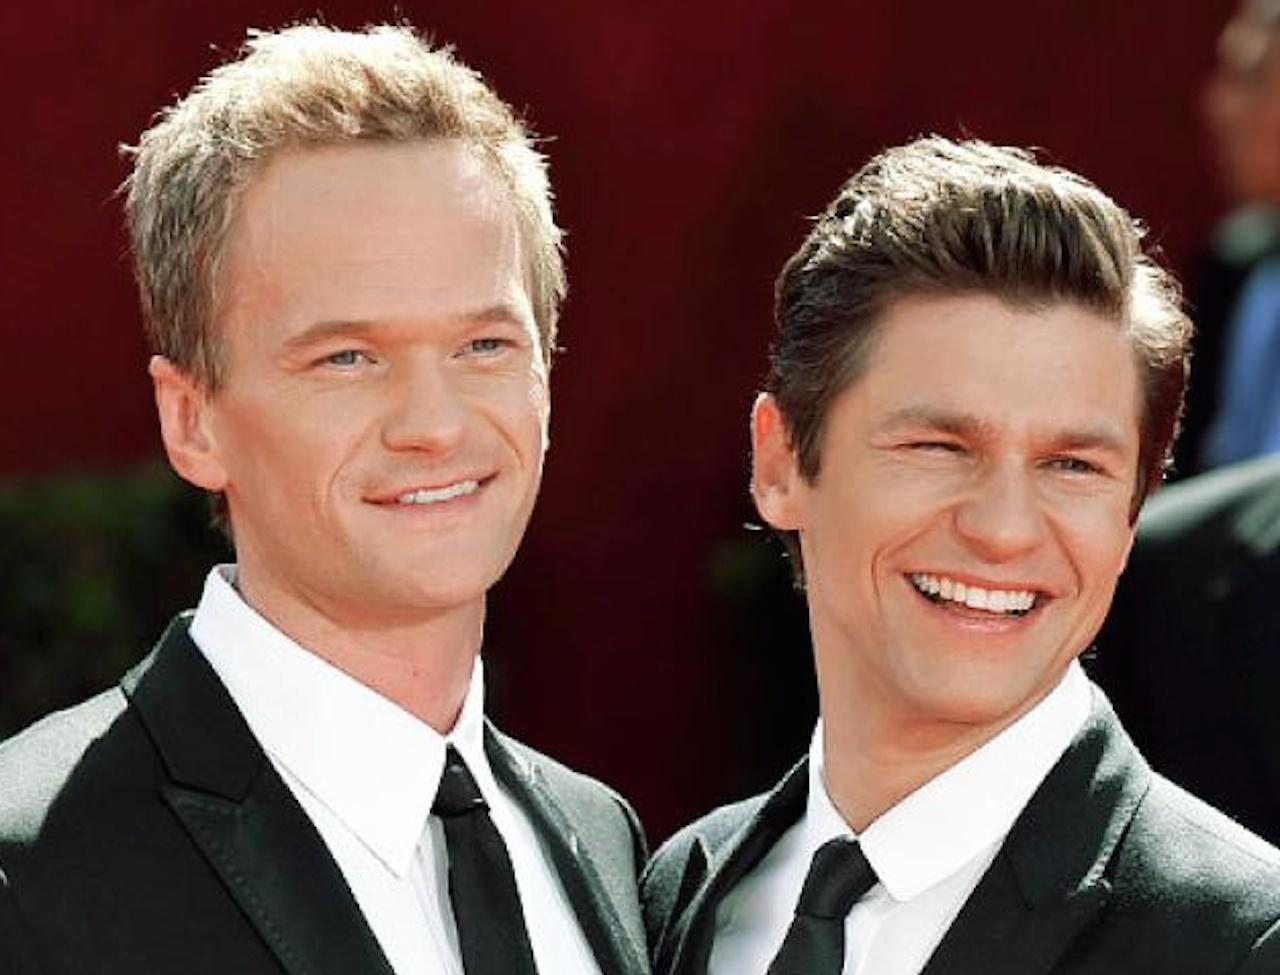 C:\Users\user\Desktop\Reacho\pics\Actor-Neil-Patrick-Harris-marries-in-Italy-in-unofficial-wedding.jpg